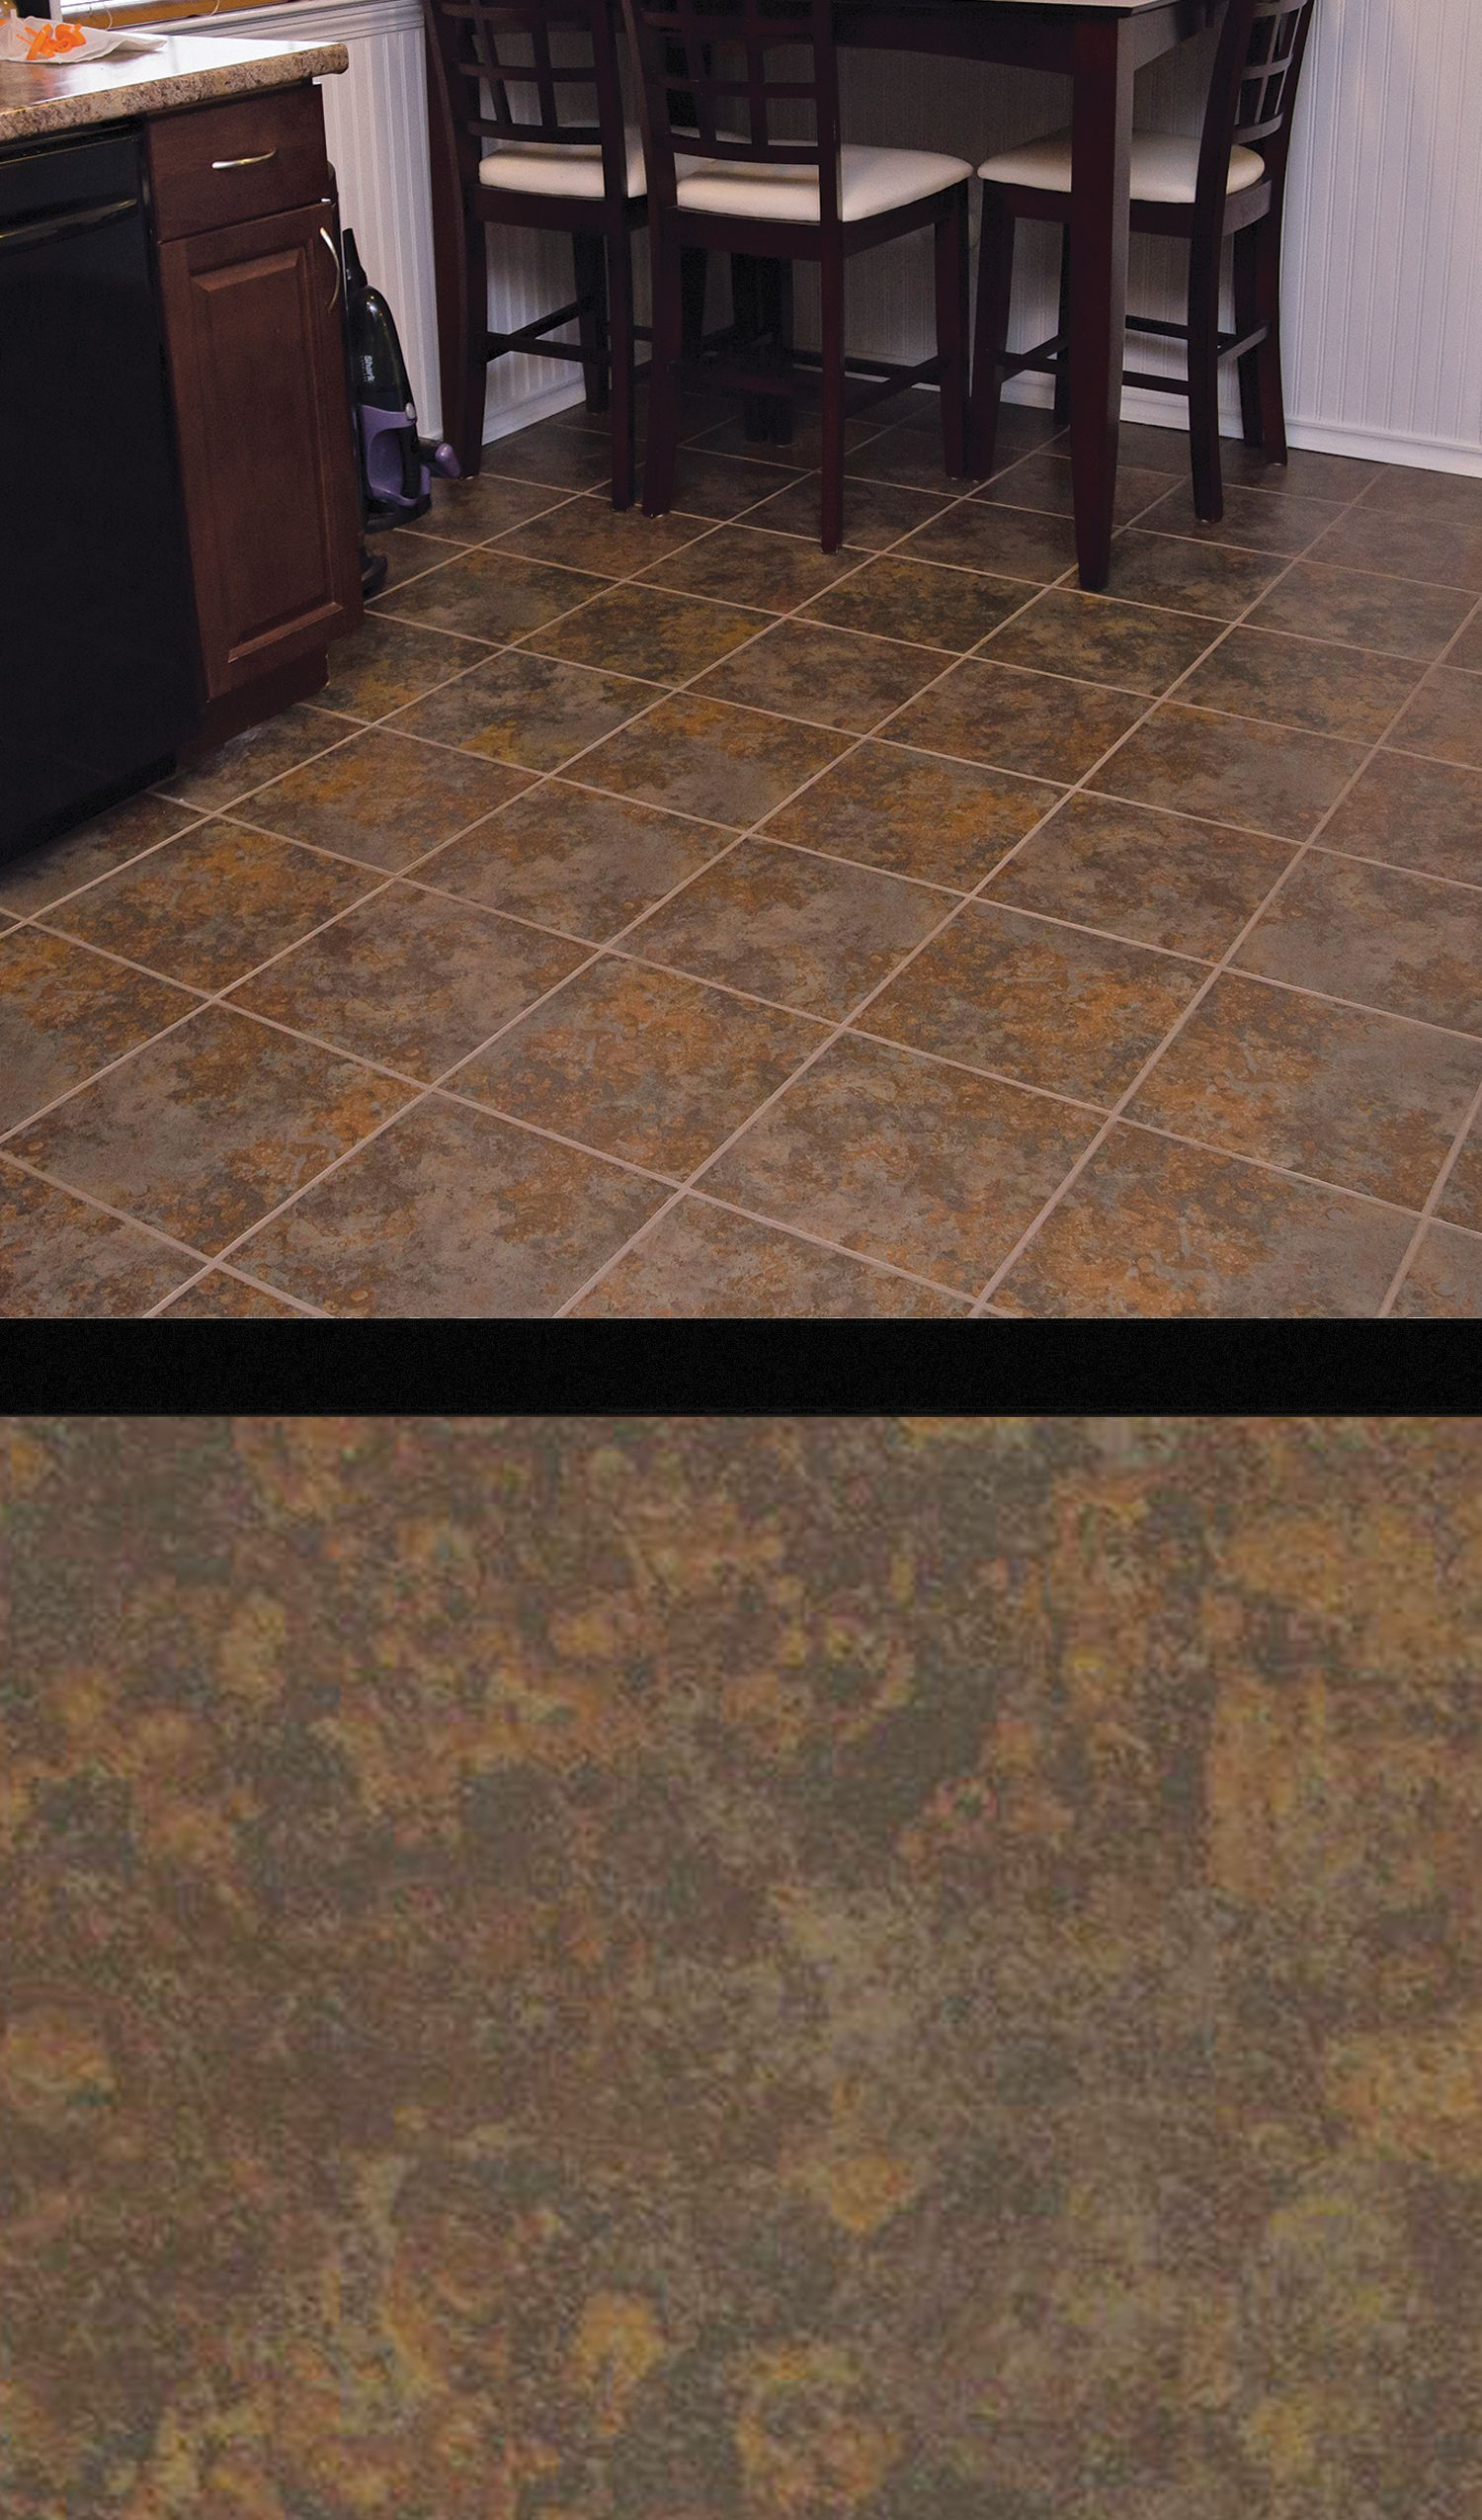 Snapstone Interlocking Porcelain Floor Tile 12 X 12 5 Sq Ft Pkg At Menards Flooring Porcelain Floor Tiles New Homes